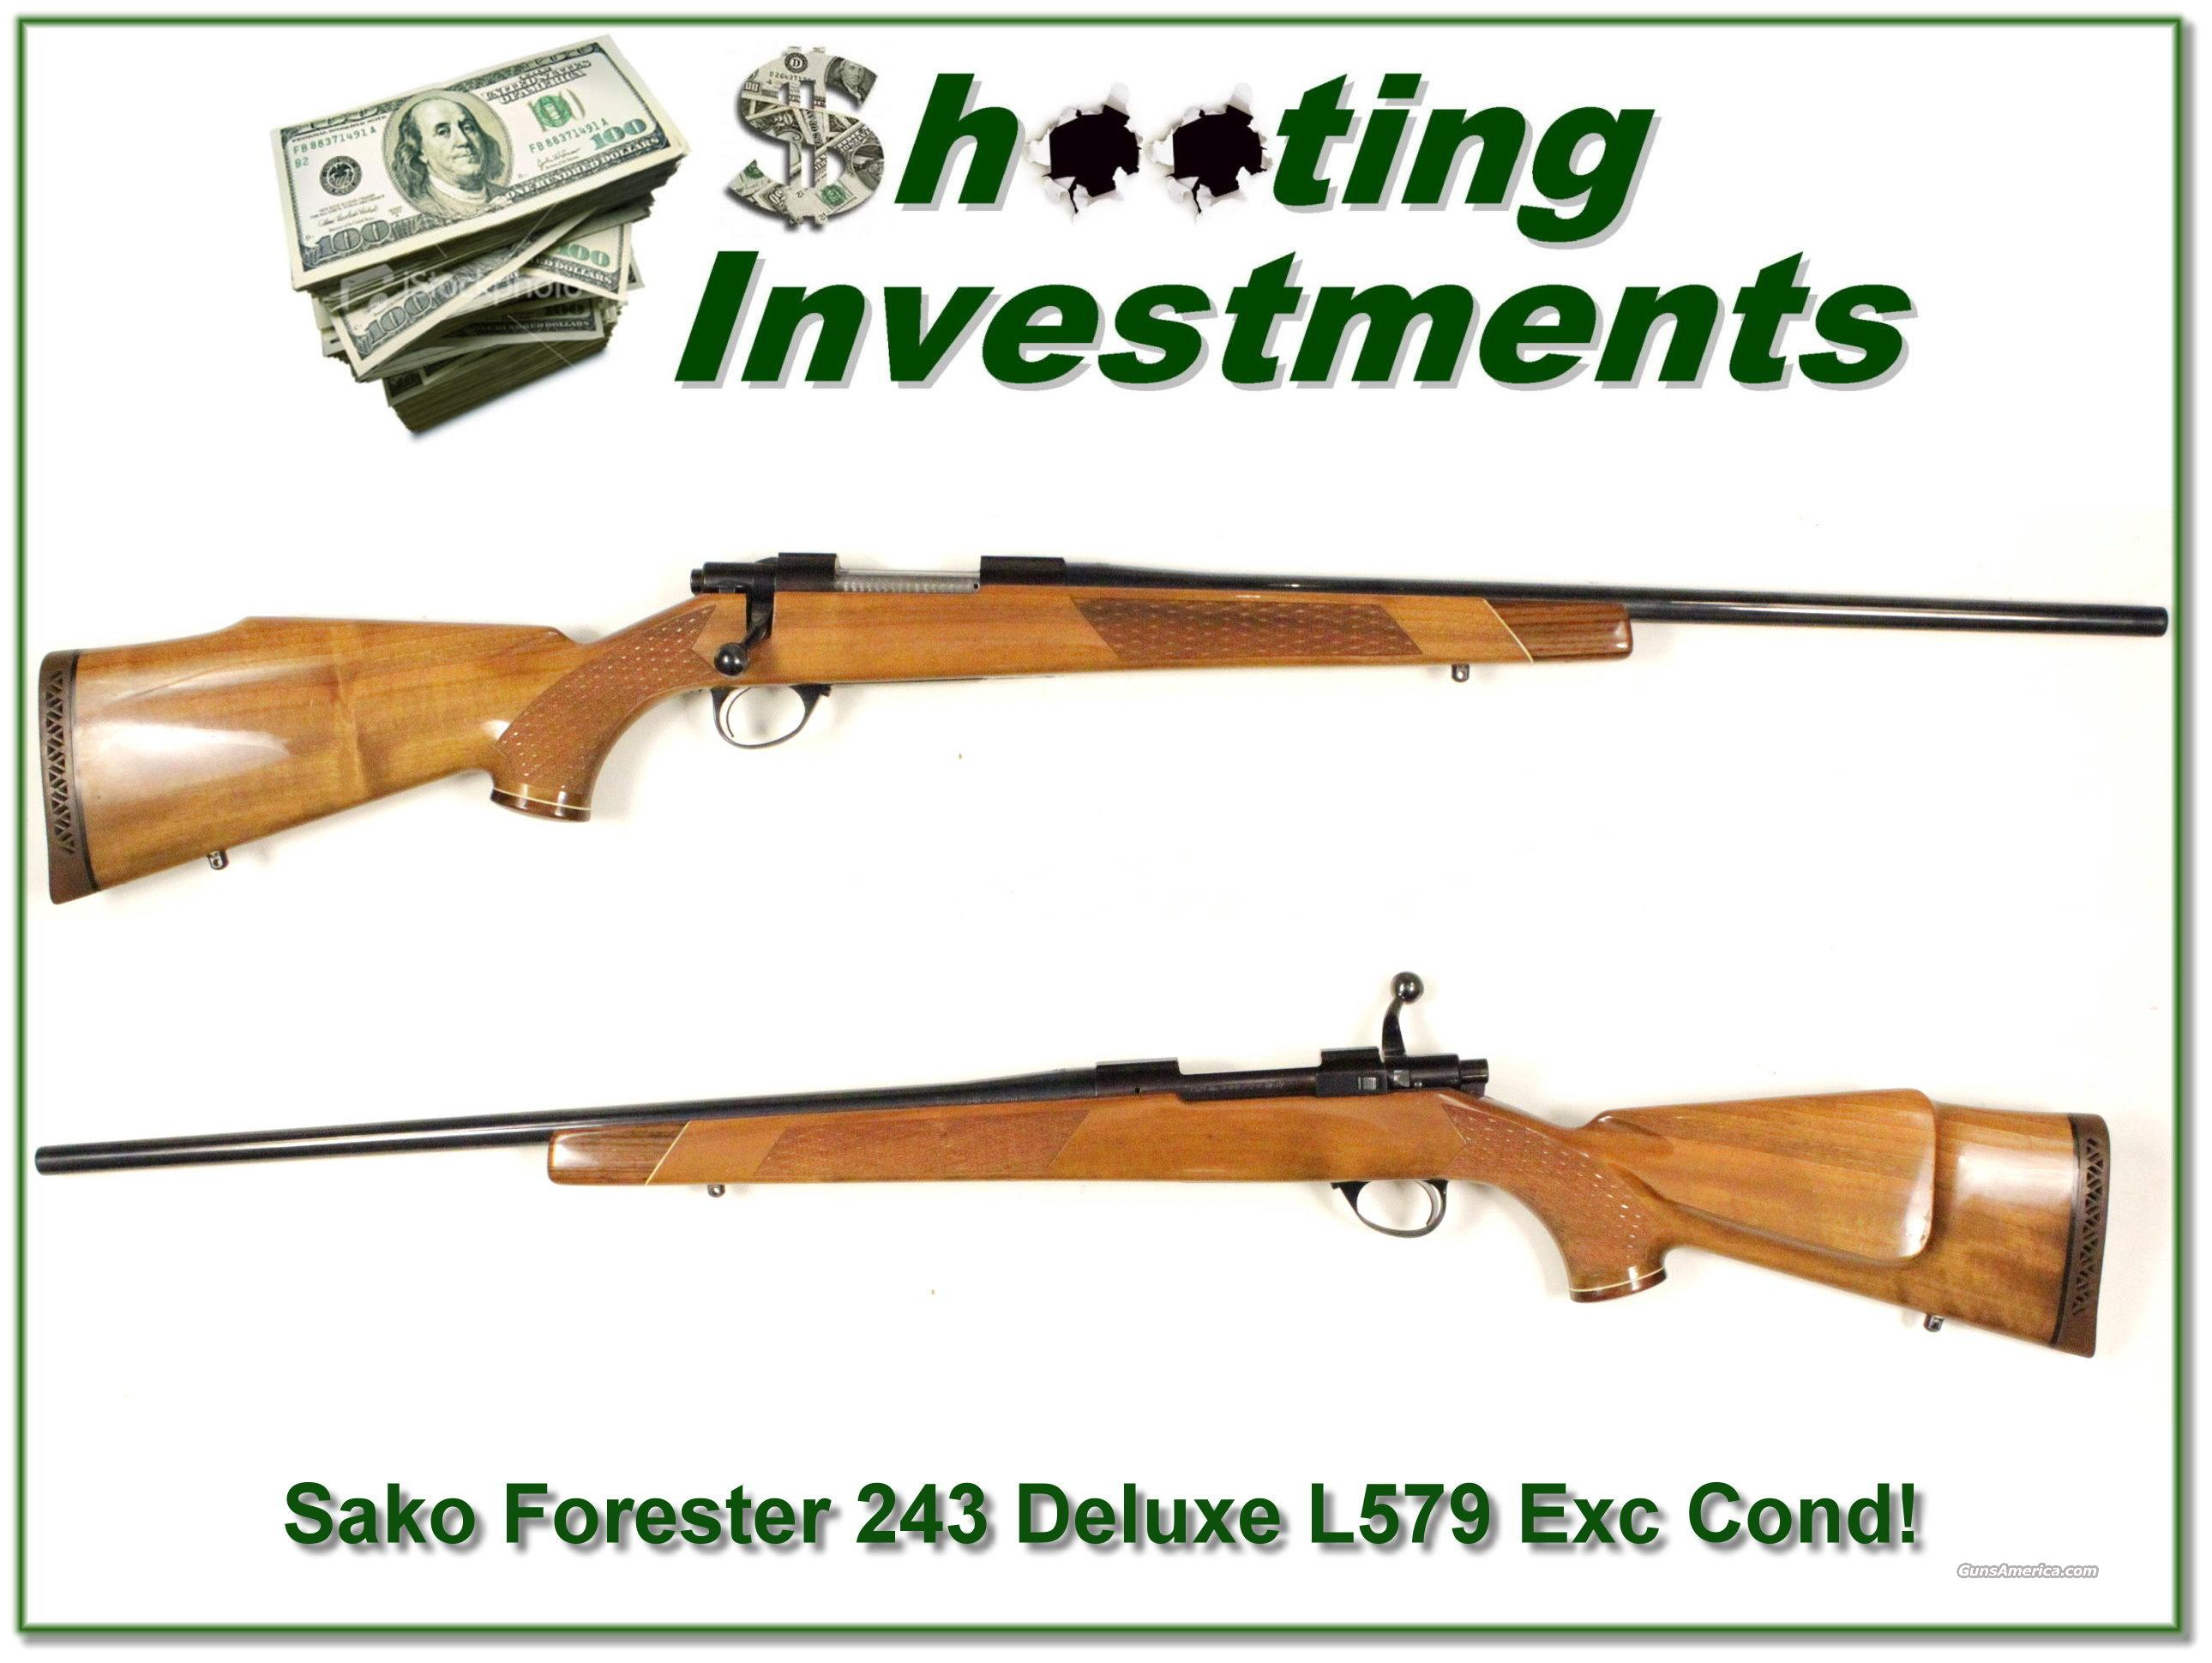 Sako Forester 243 Deluxe L579 Exc Cond!  Guns > Rifles > Sako Rifles > Other Bolt Action